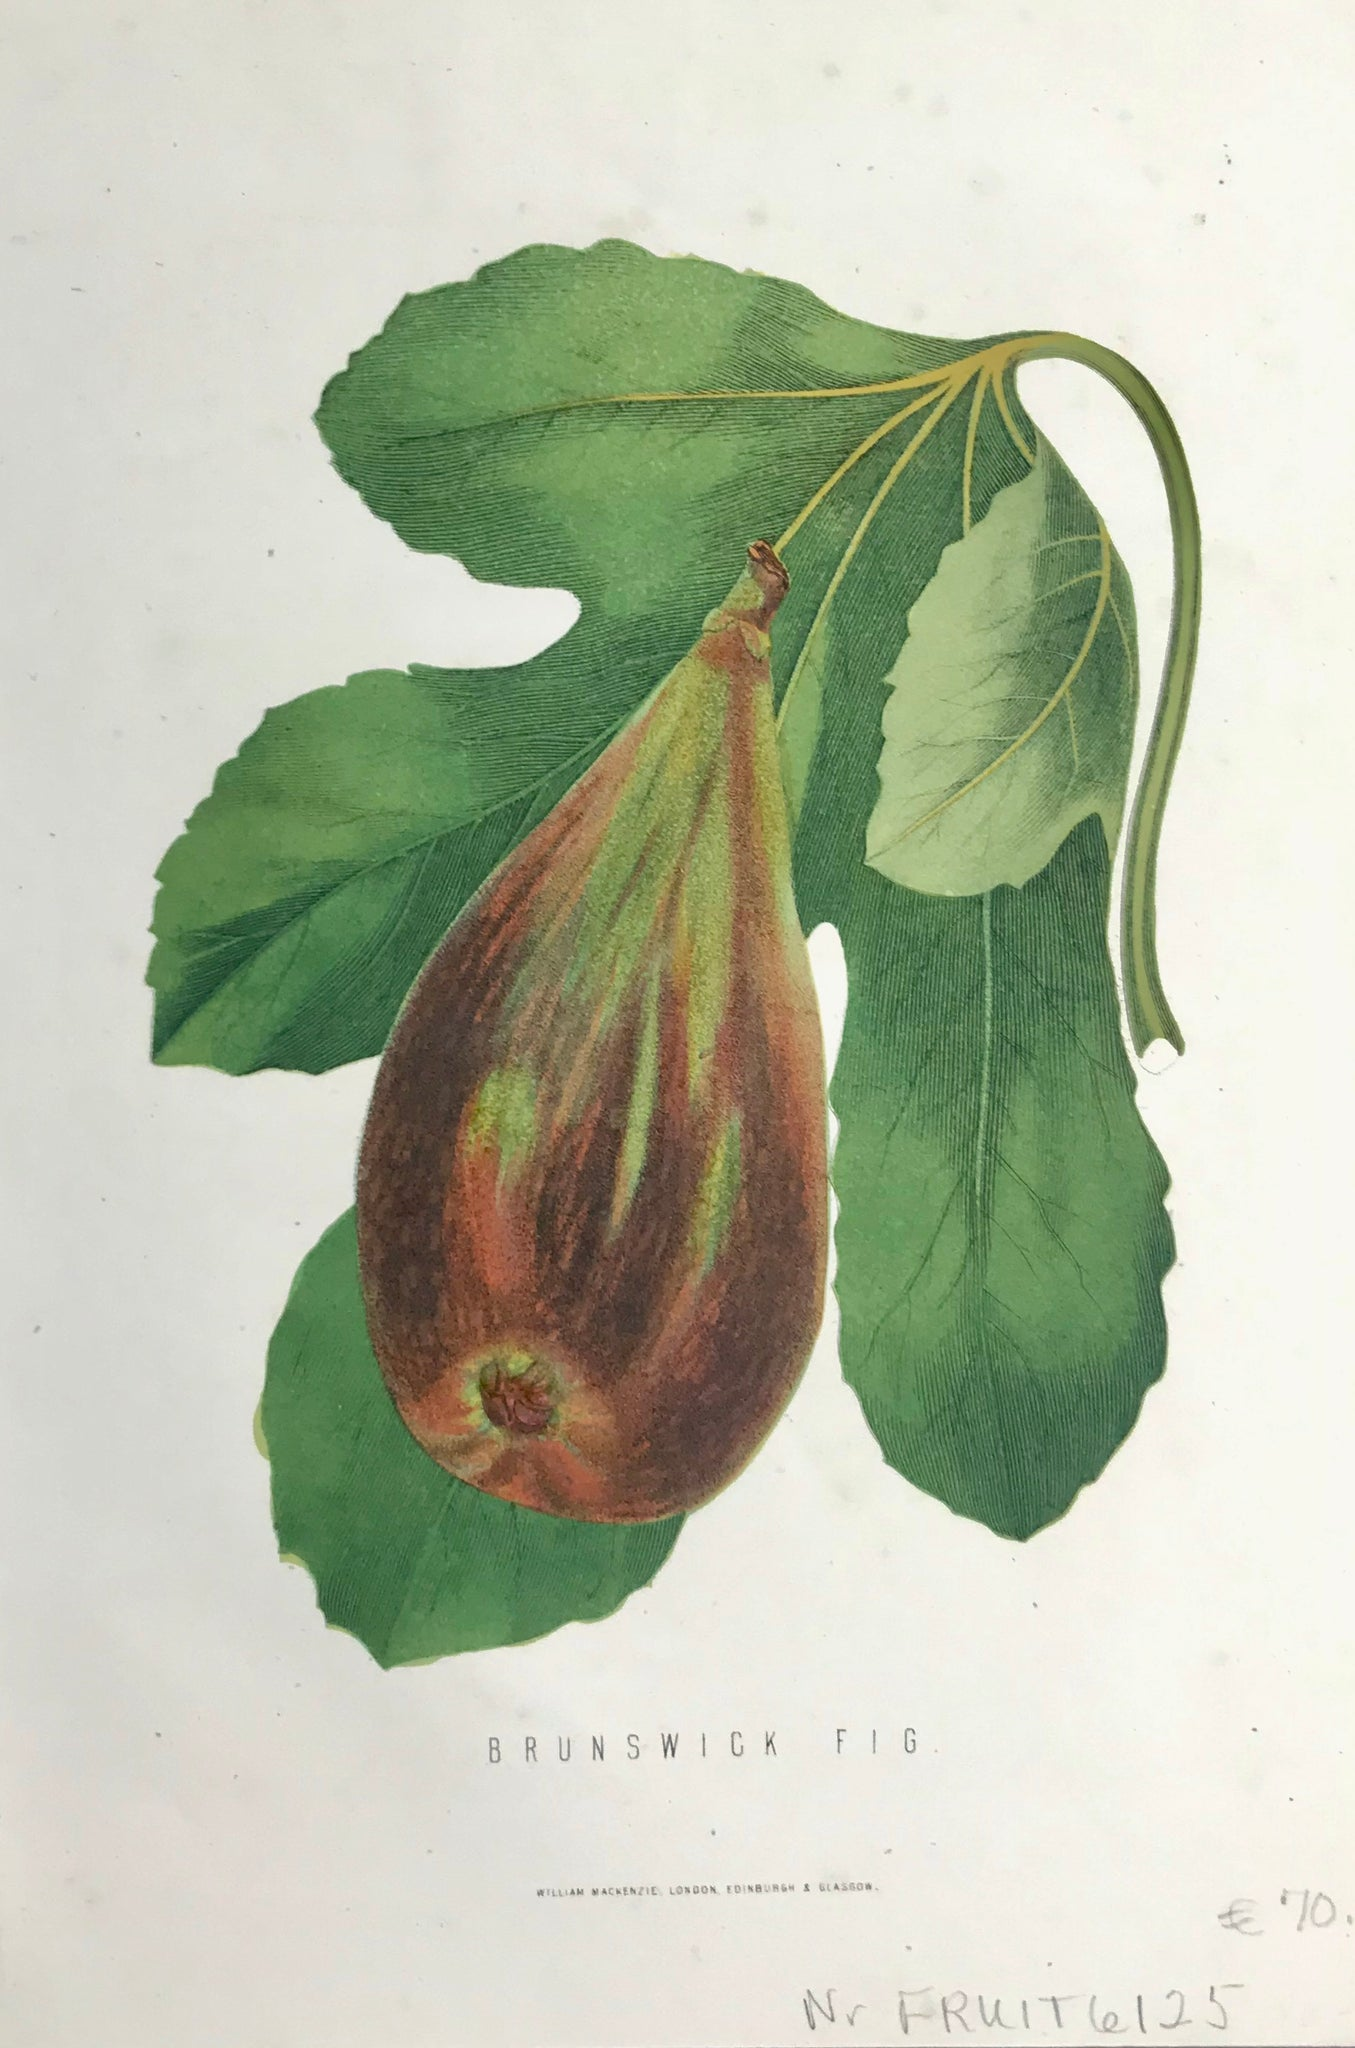 """Brunswick Fig""  Pen lithograph published in London ca 1860. Original hand coloring."